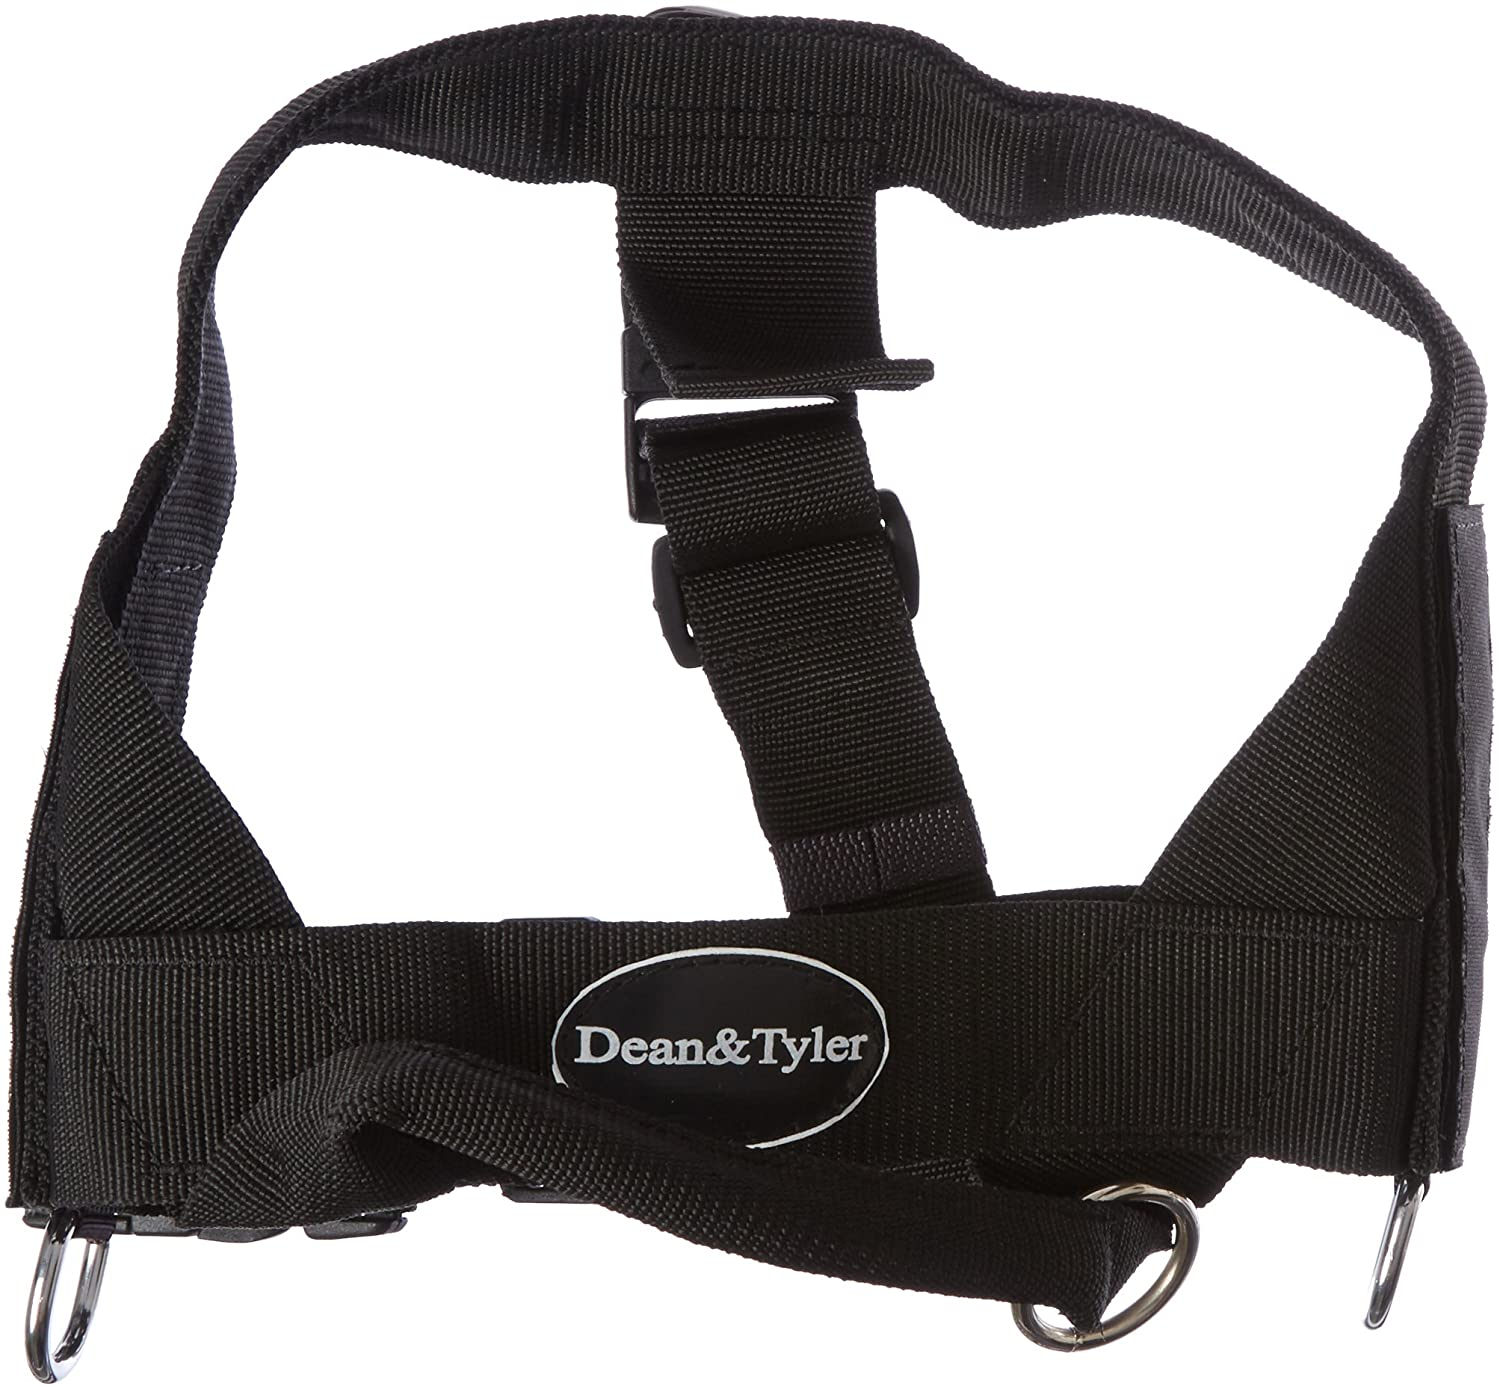 Dean & Tyler Universal No Pull 26-Inch to 32-Inch Dog Harness, Medium, US Military K9, Black